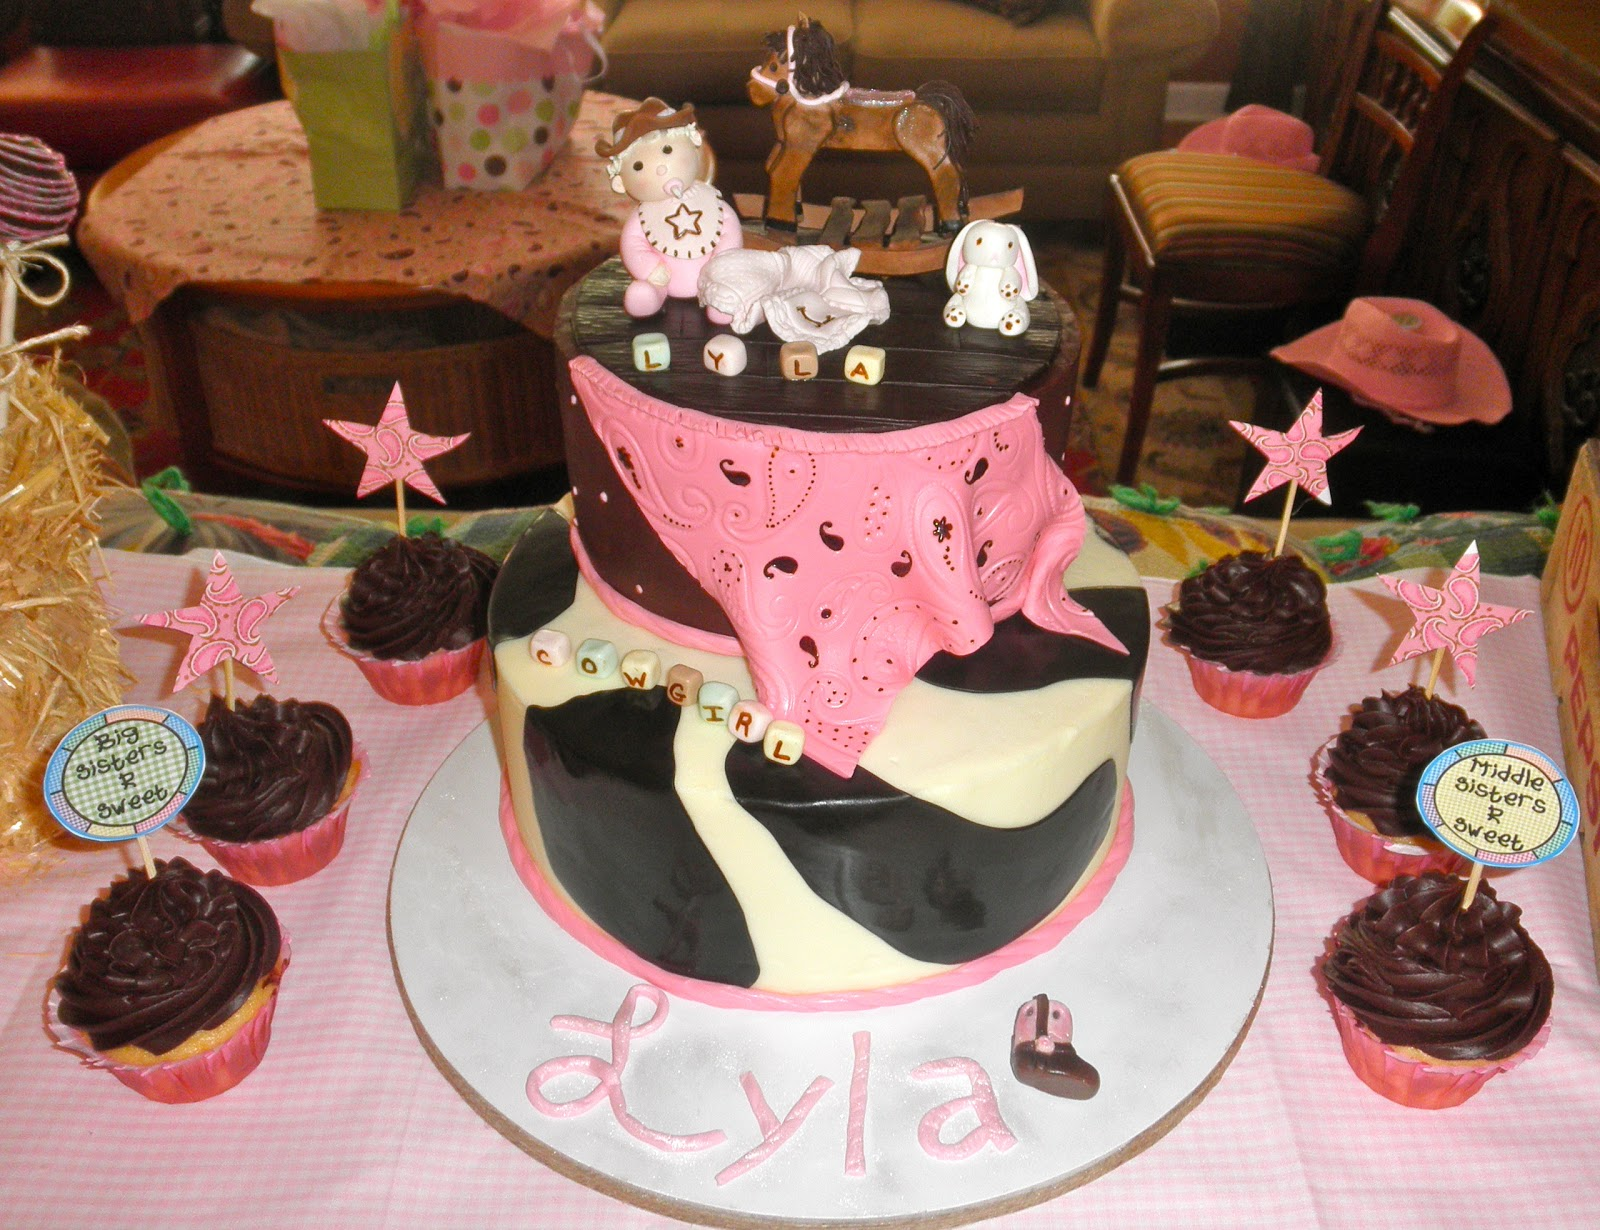 Baby Shower Cakes: Cowgirl Baby Shower Cake Ideas